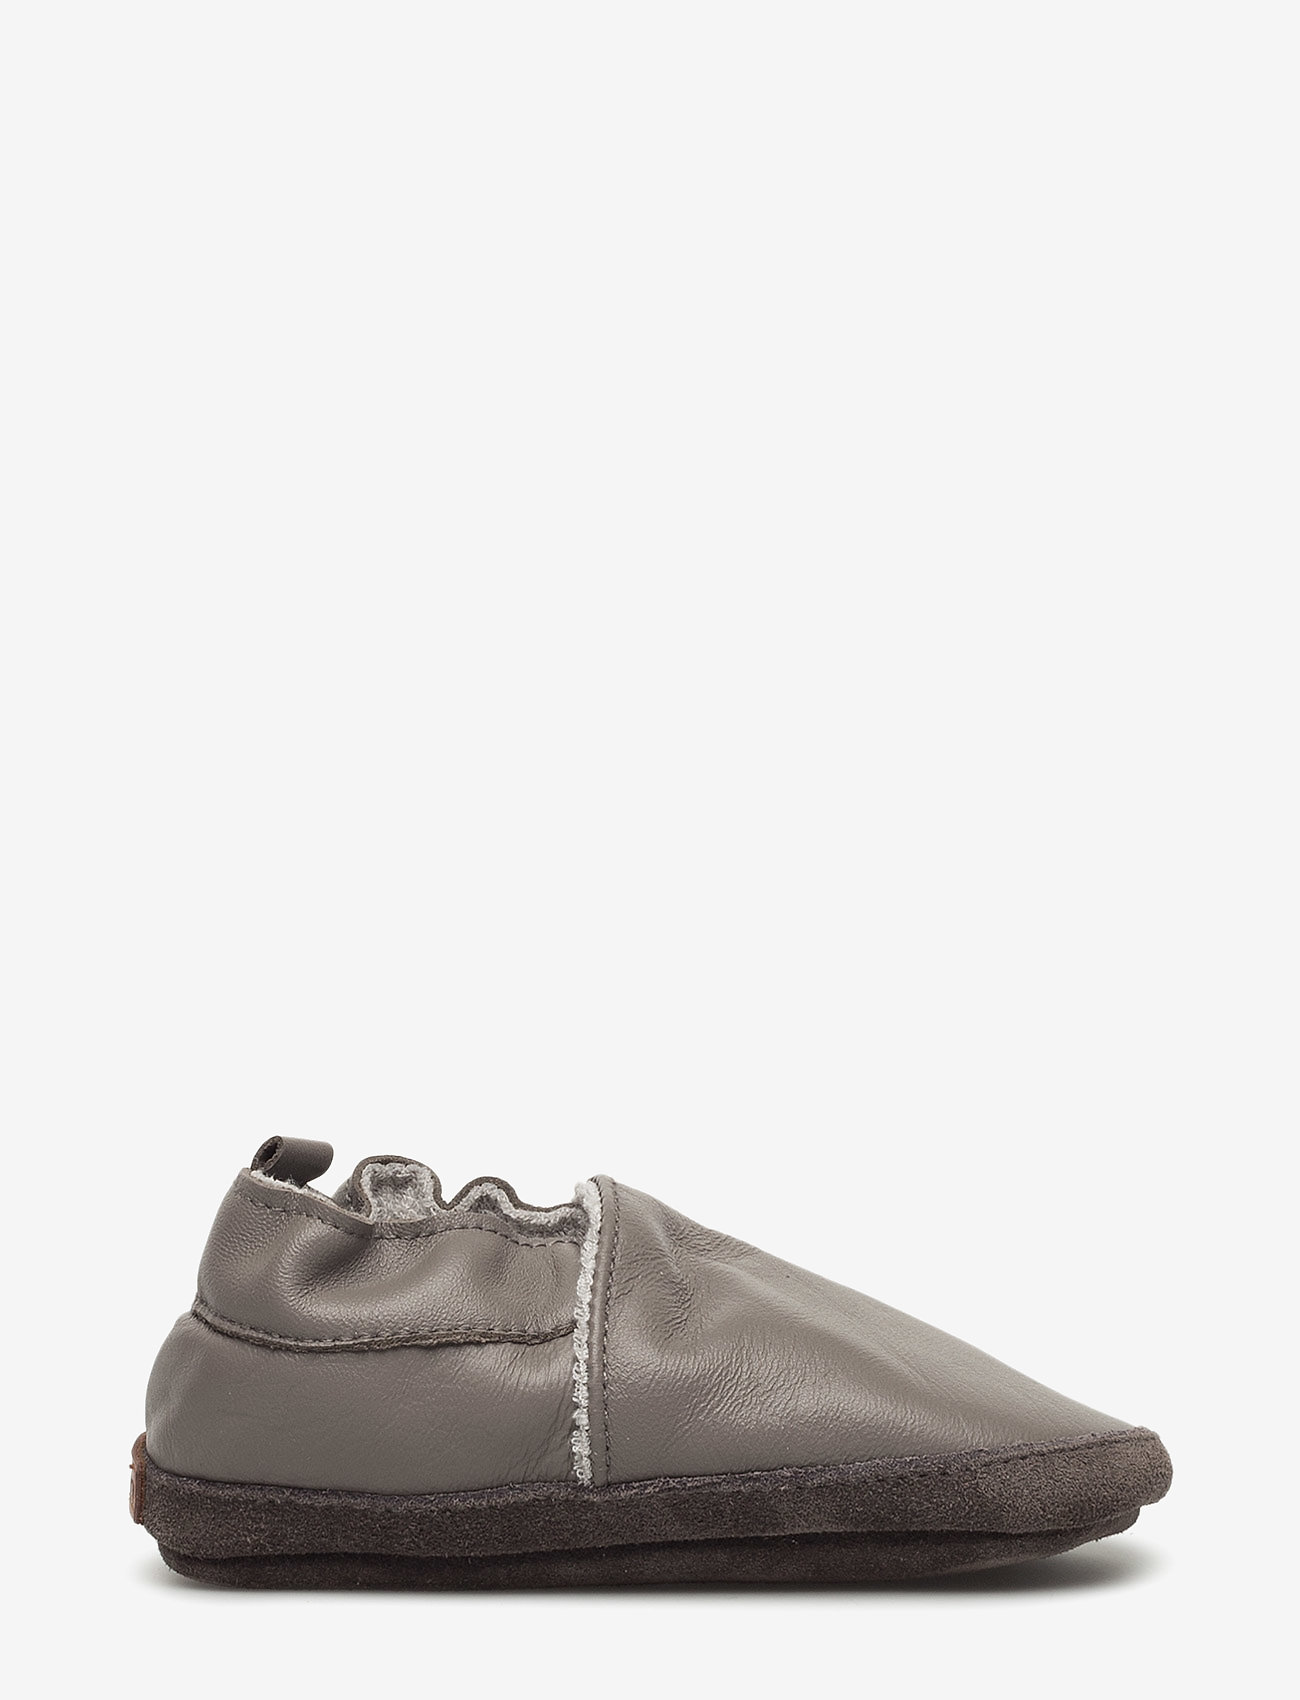 Melton - Leather shoe - Loafer - schuhe - 150/darkgrey - 1